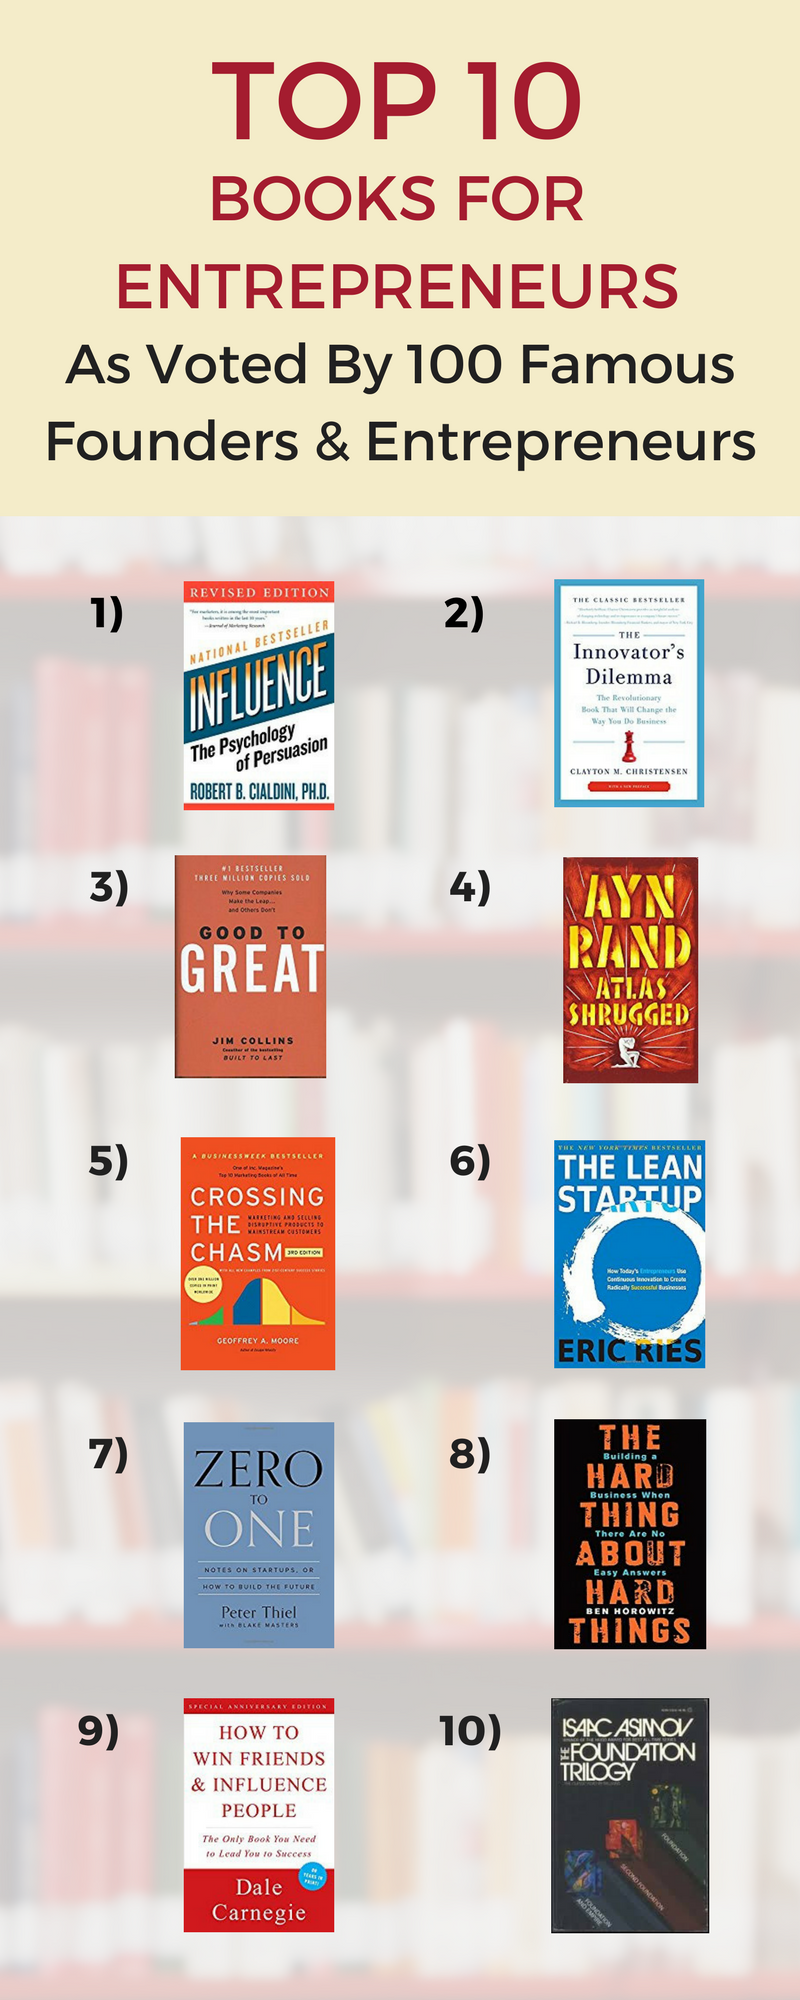 Libros De E-commerce Best Business Books Voted On By 100 Top Ceos Em Imports